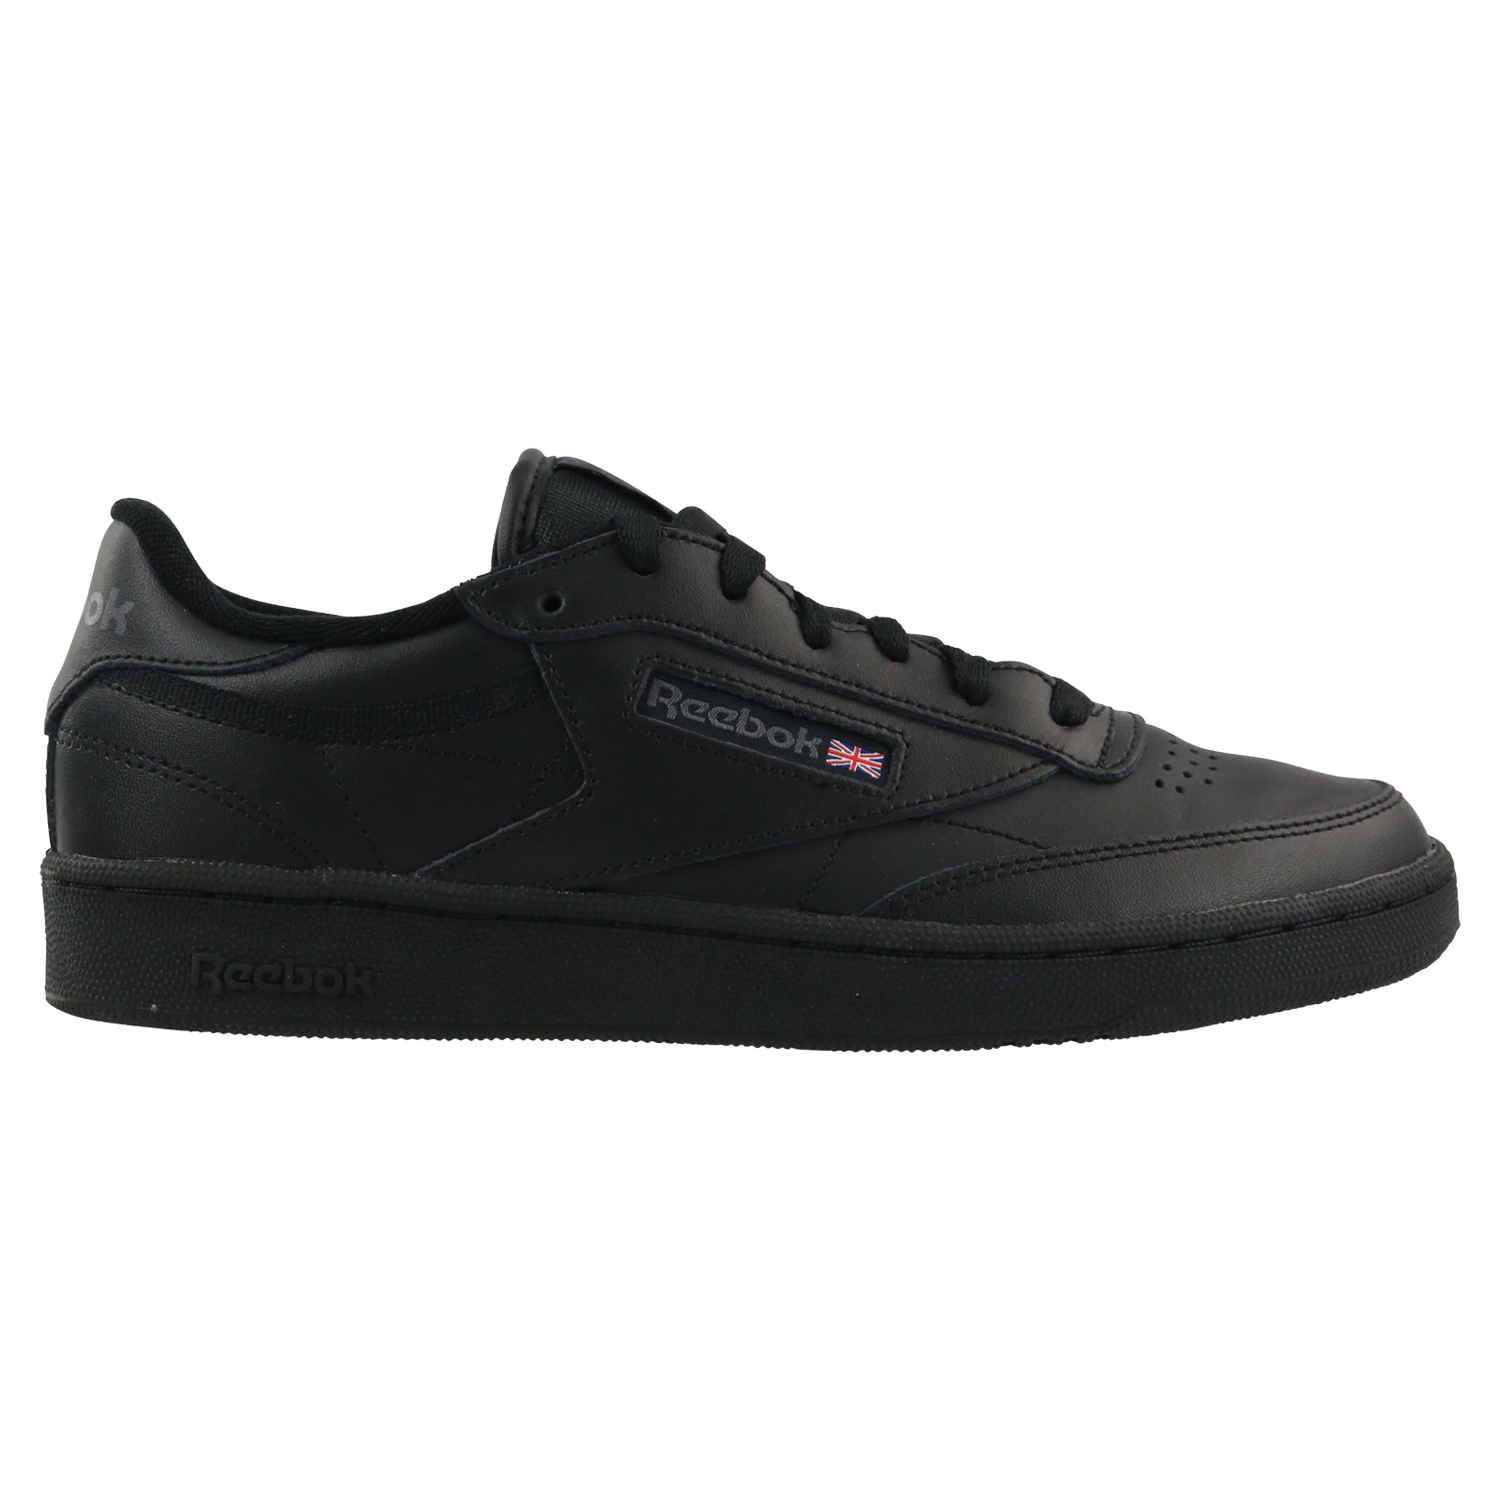 Reebok Club C C C 85 SO Sneaker Zapatos Herren 1f1396